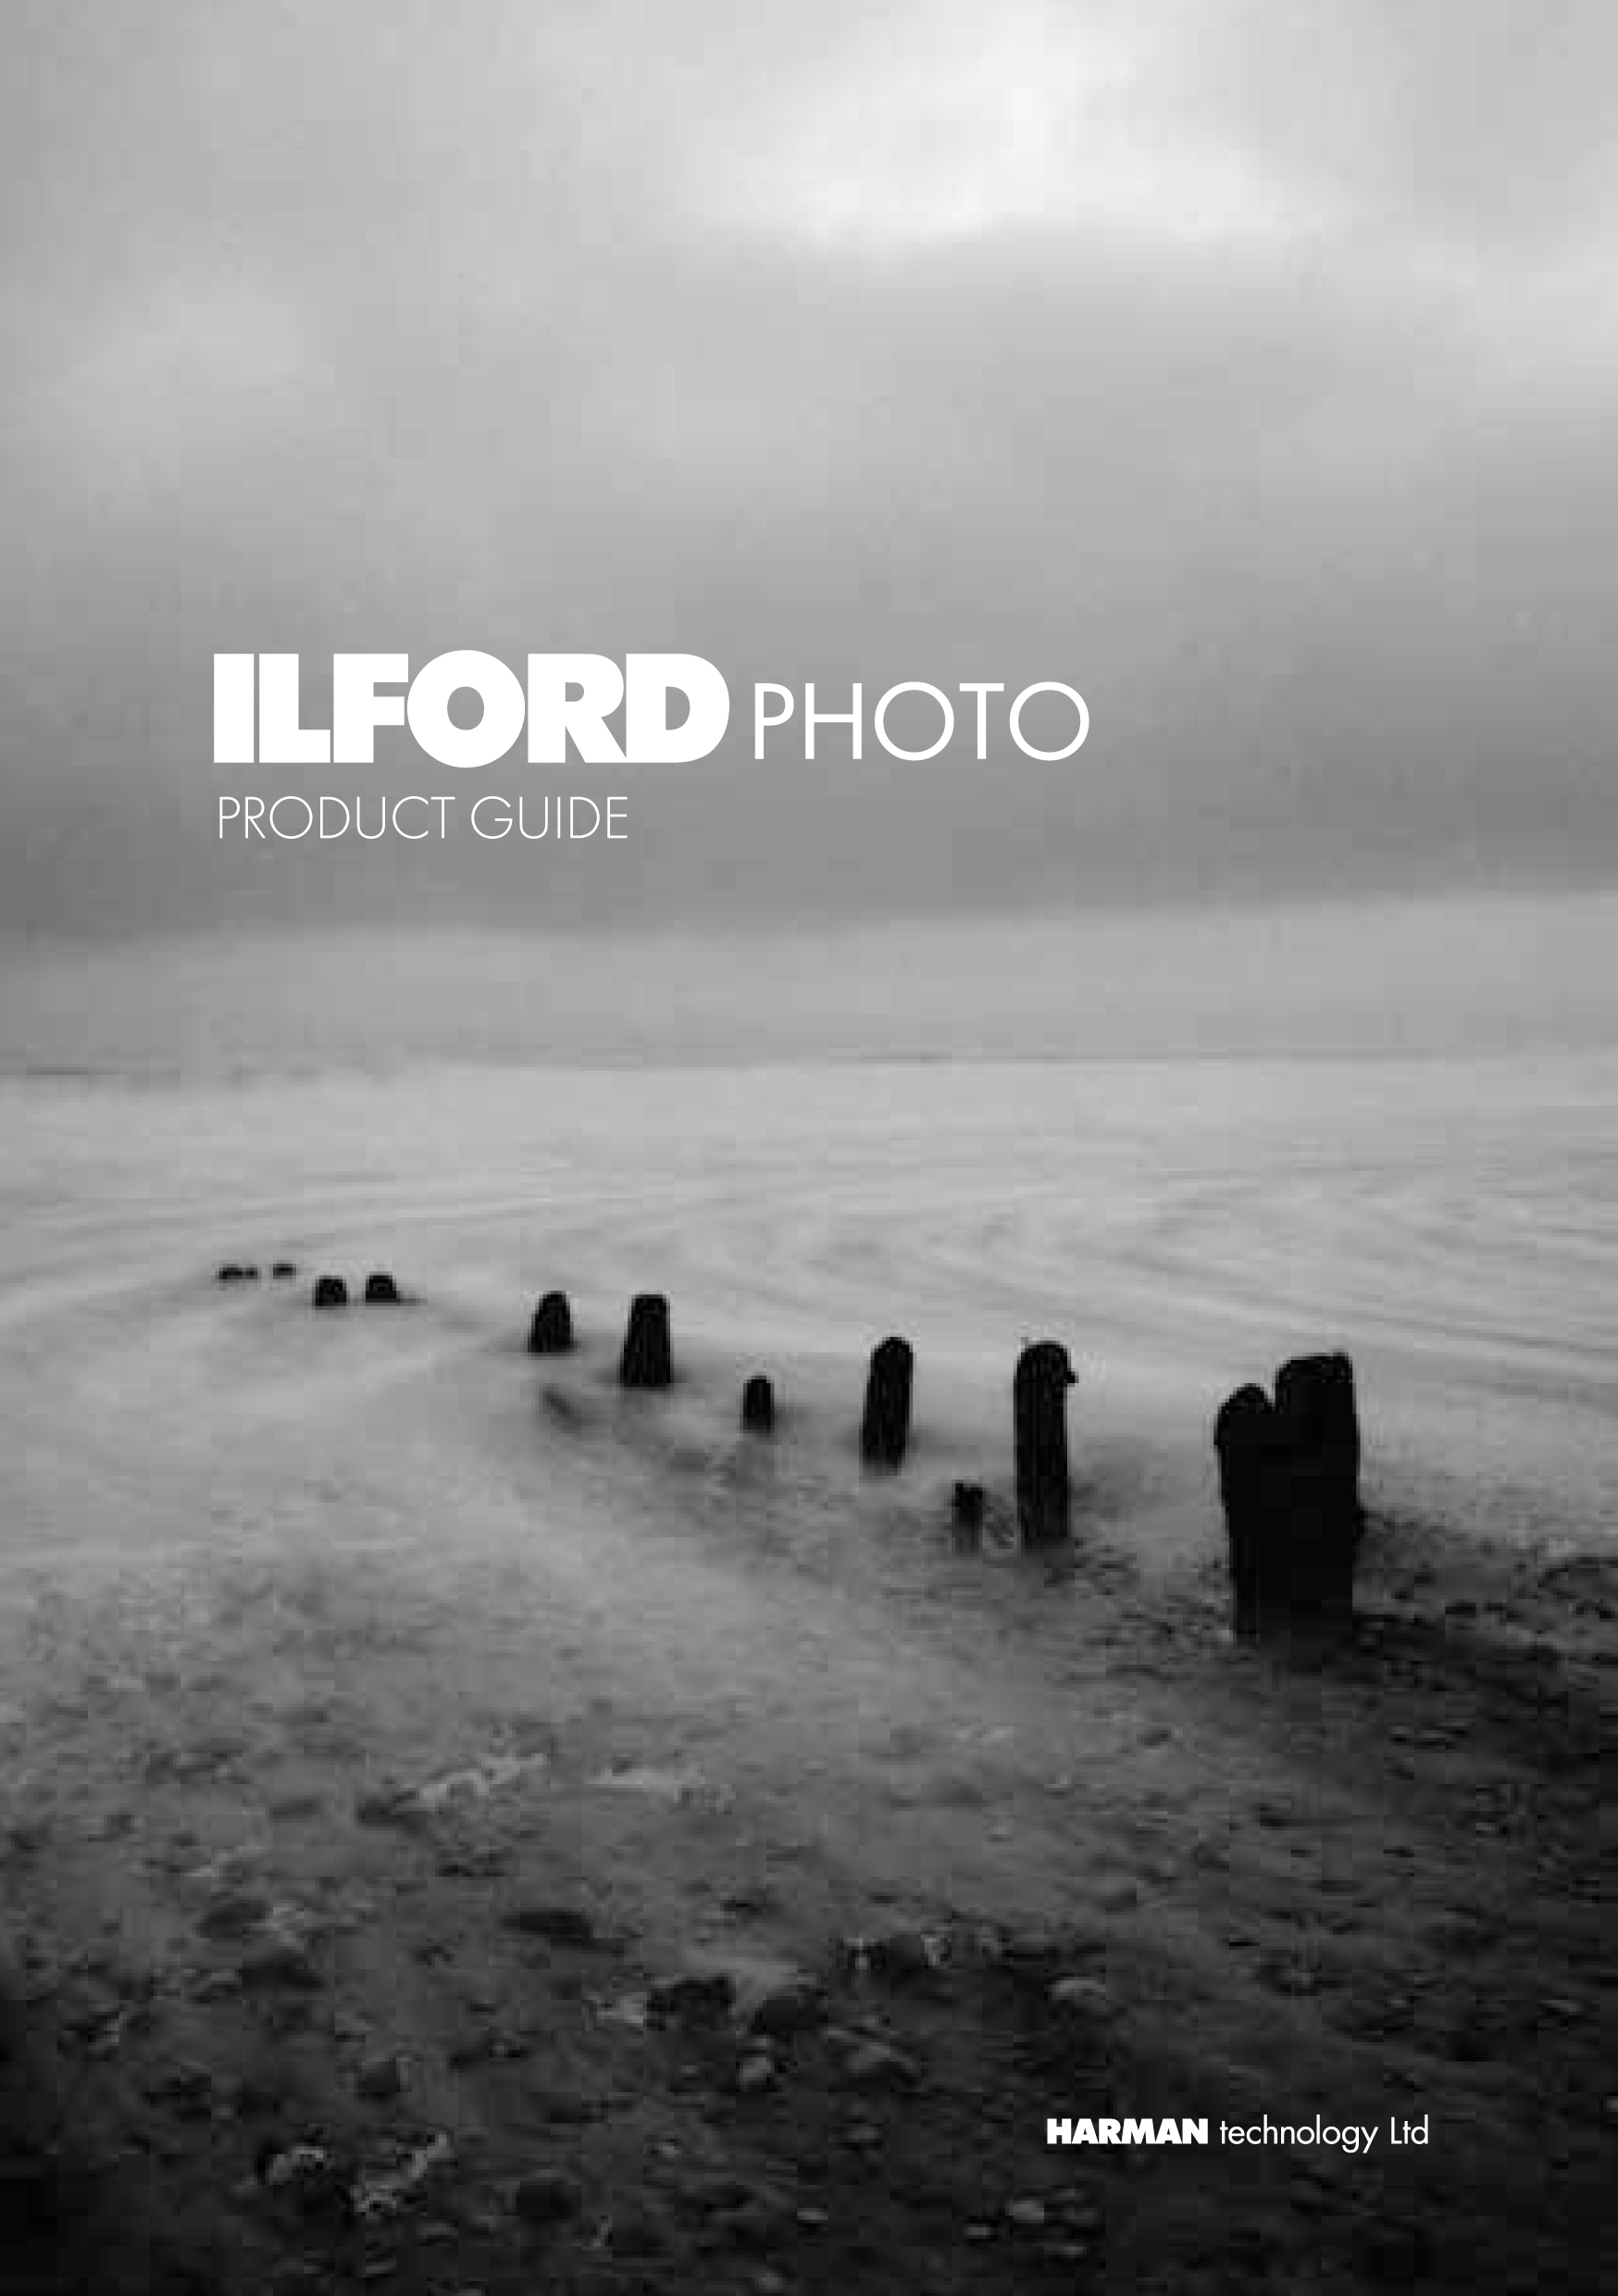 Ilford-Product-Brochure-LOW-RES-WEB-1-1